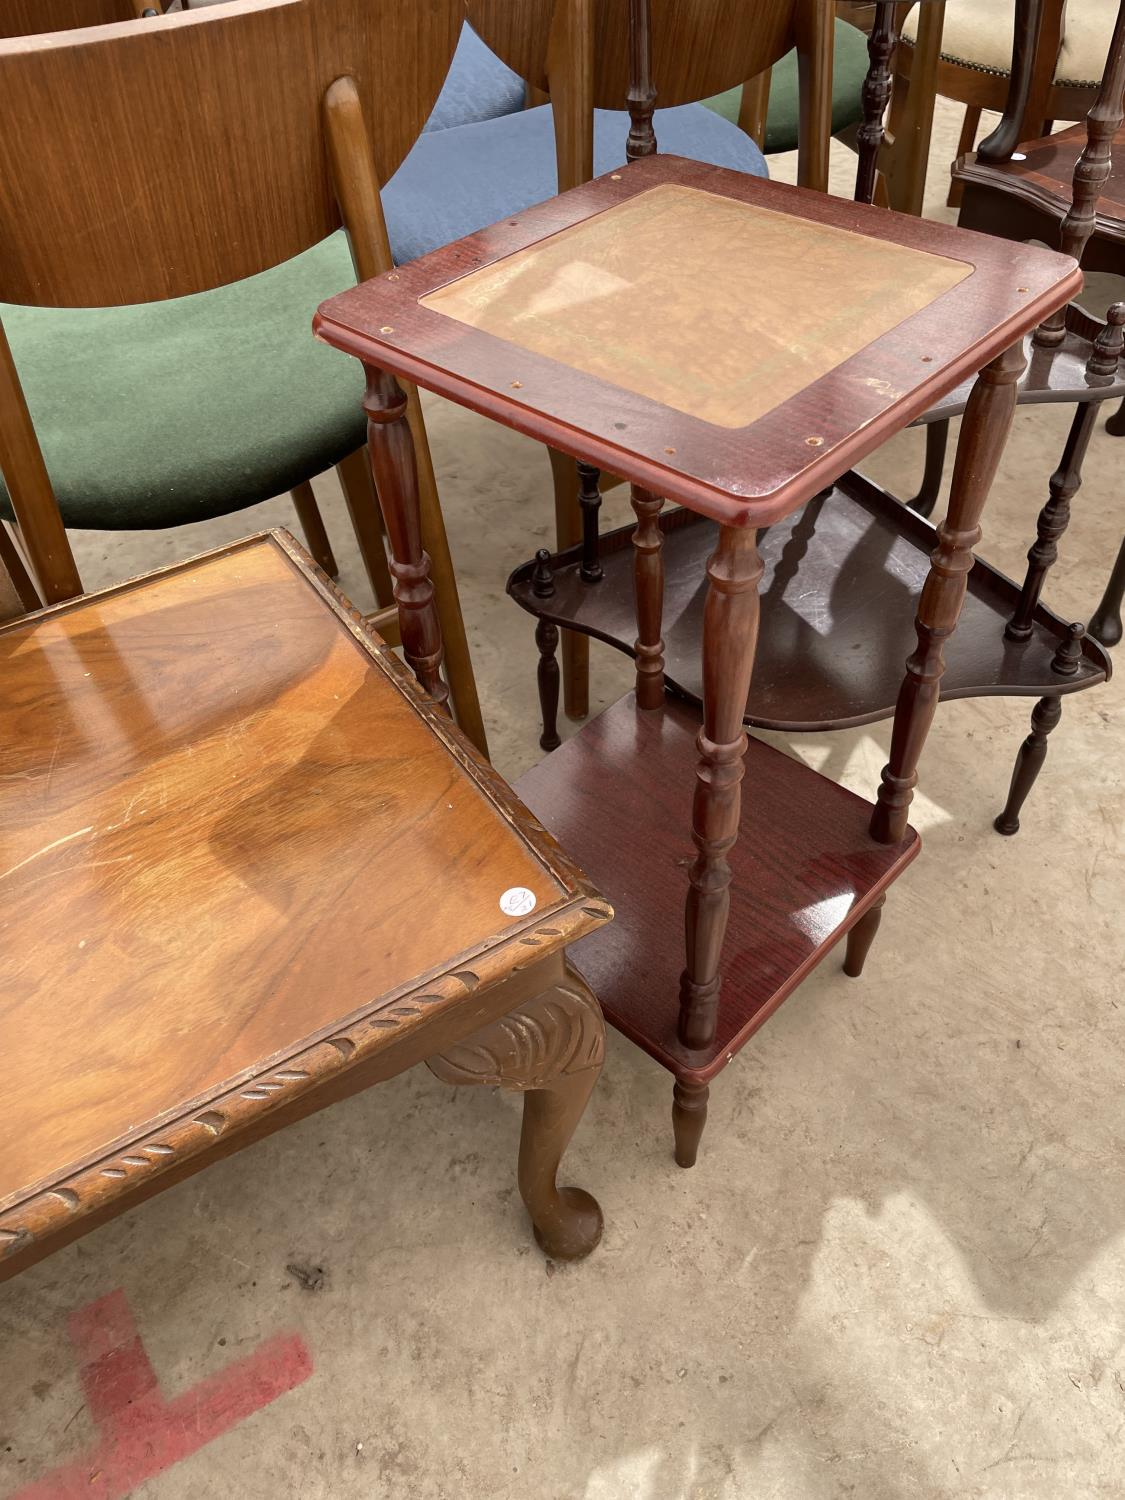 A PASTING TABLE, CORNER WHATNOT, TWO TIER TABLE AND WALNUT COFFEE TABLE - Image 3 of 4